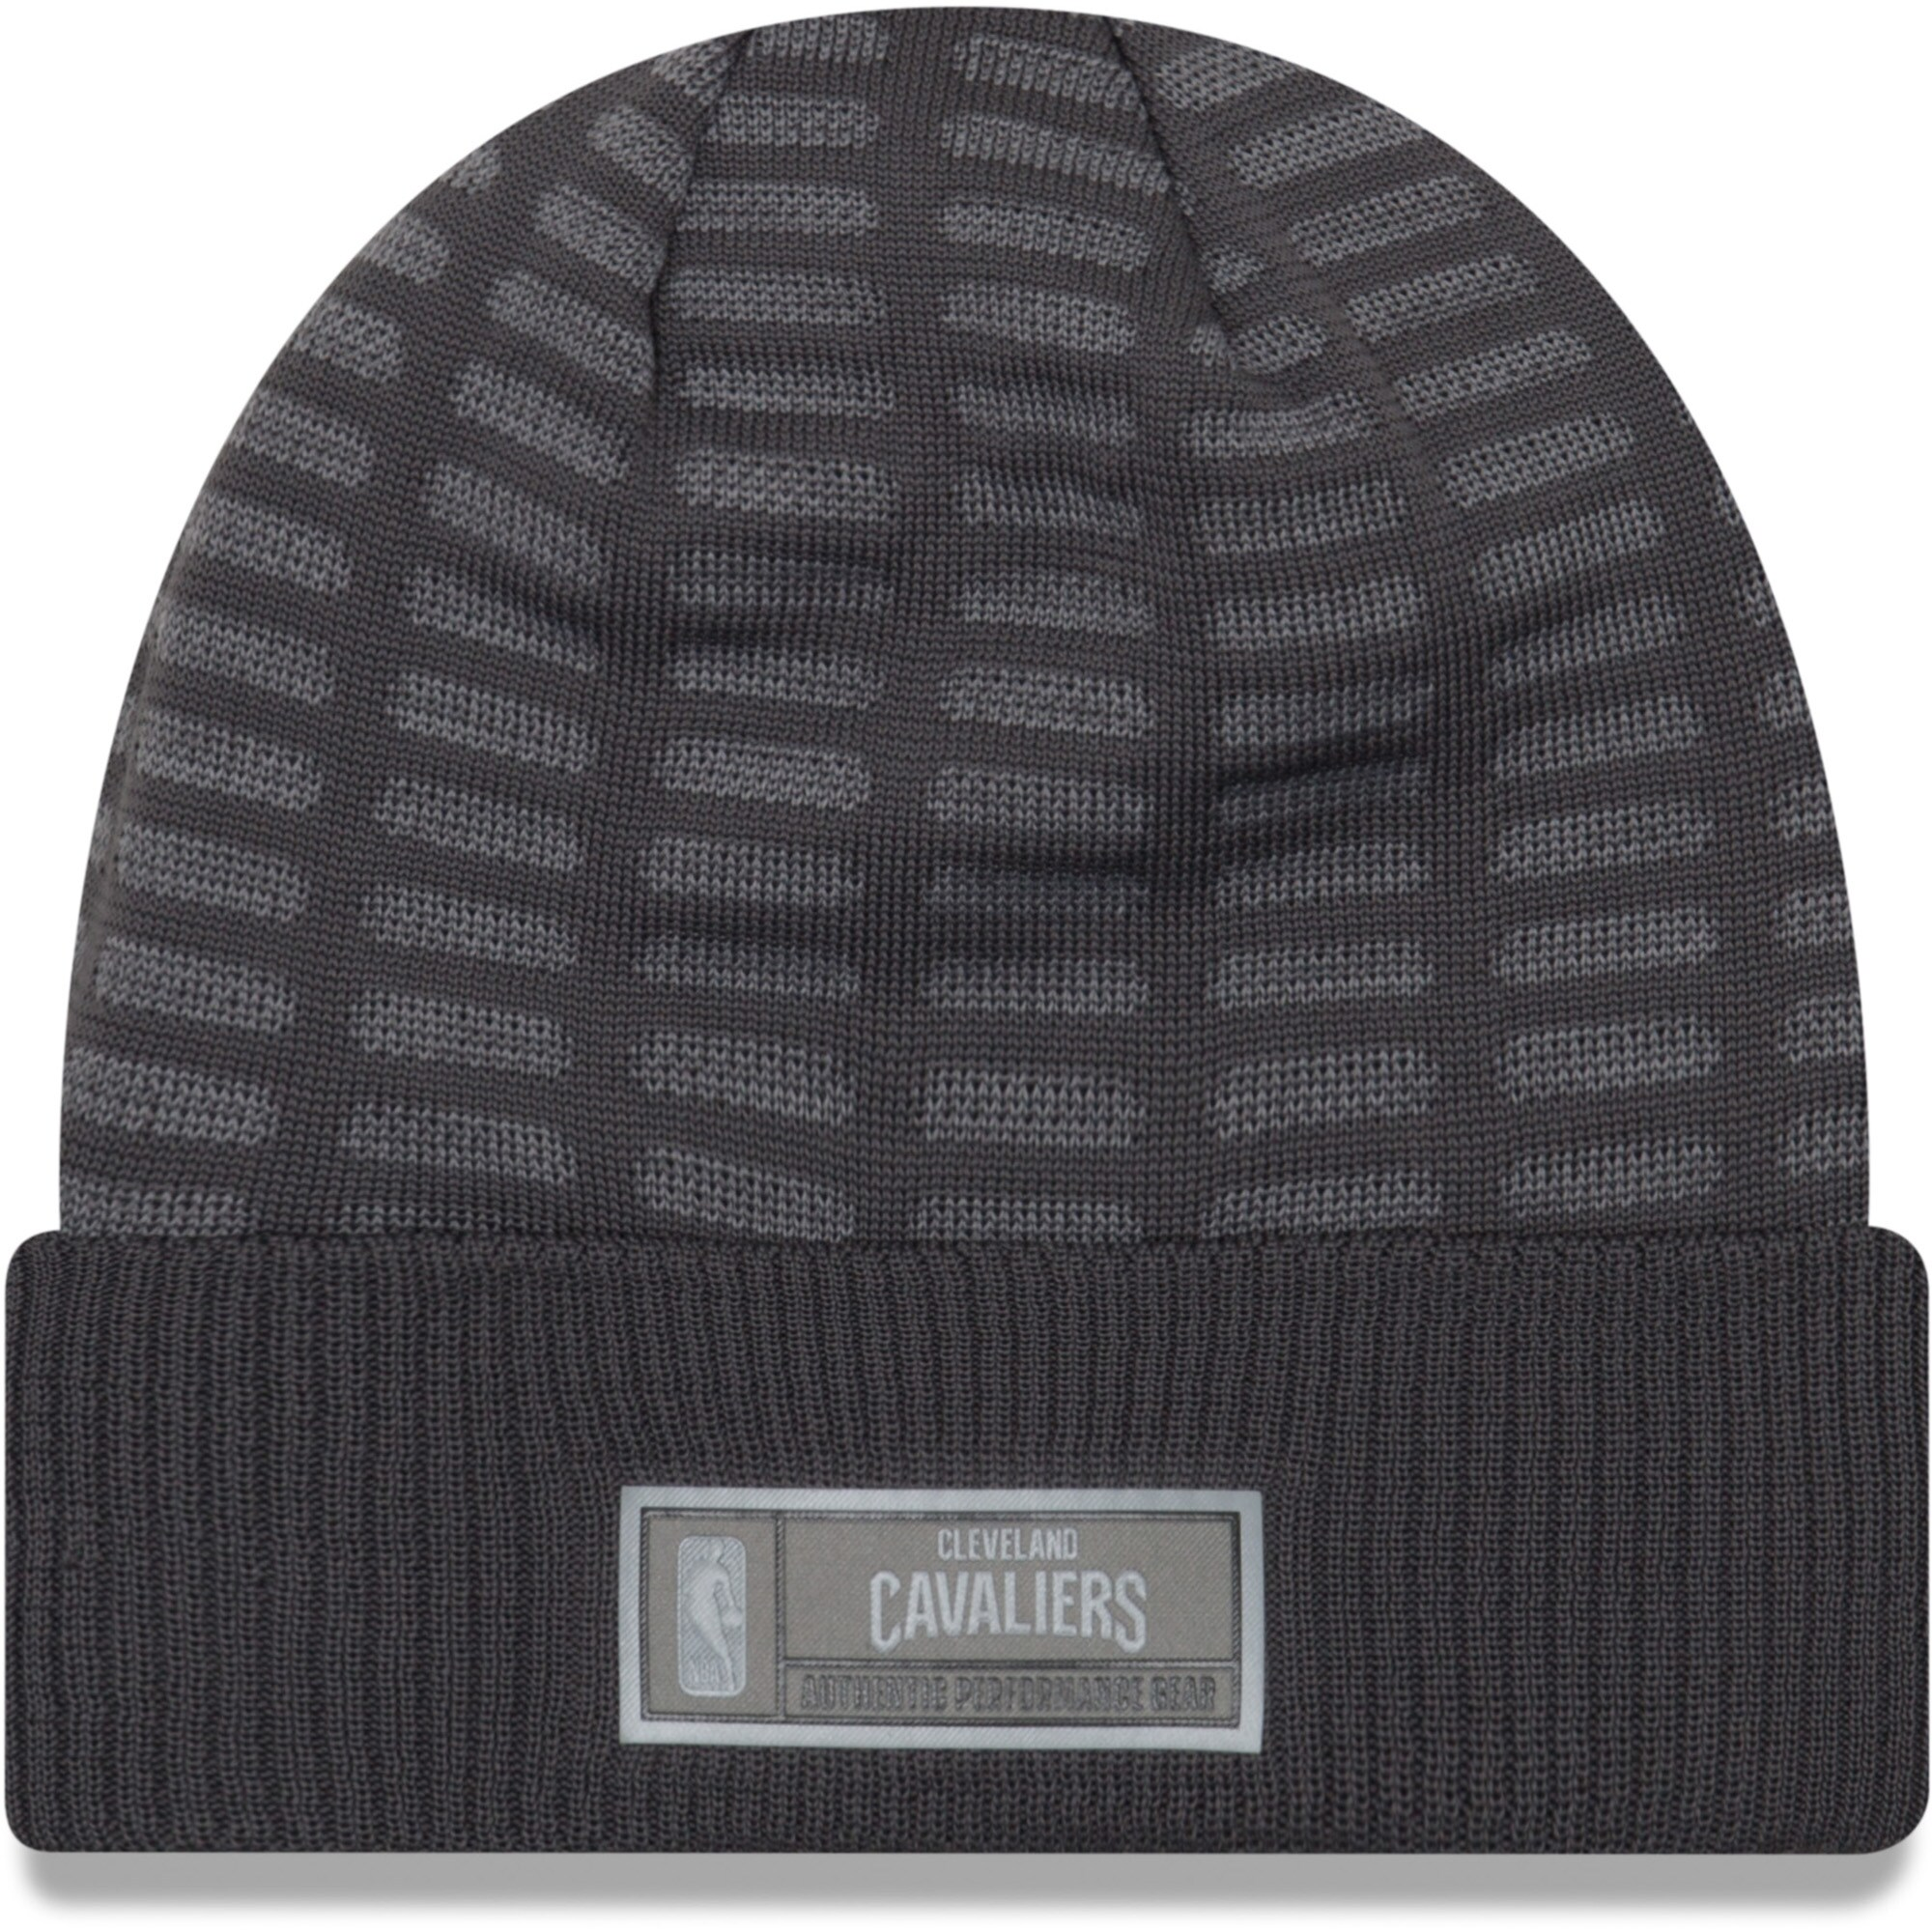 Cleveland Cavaliers New Era Authentic Training Cuffed Knit Hat - Graphite